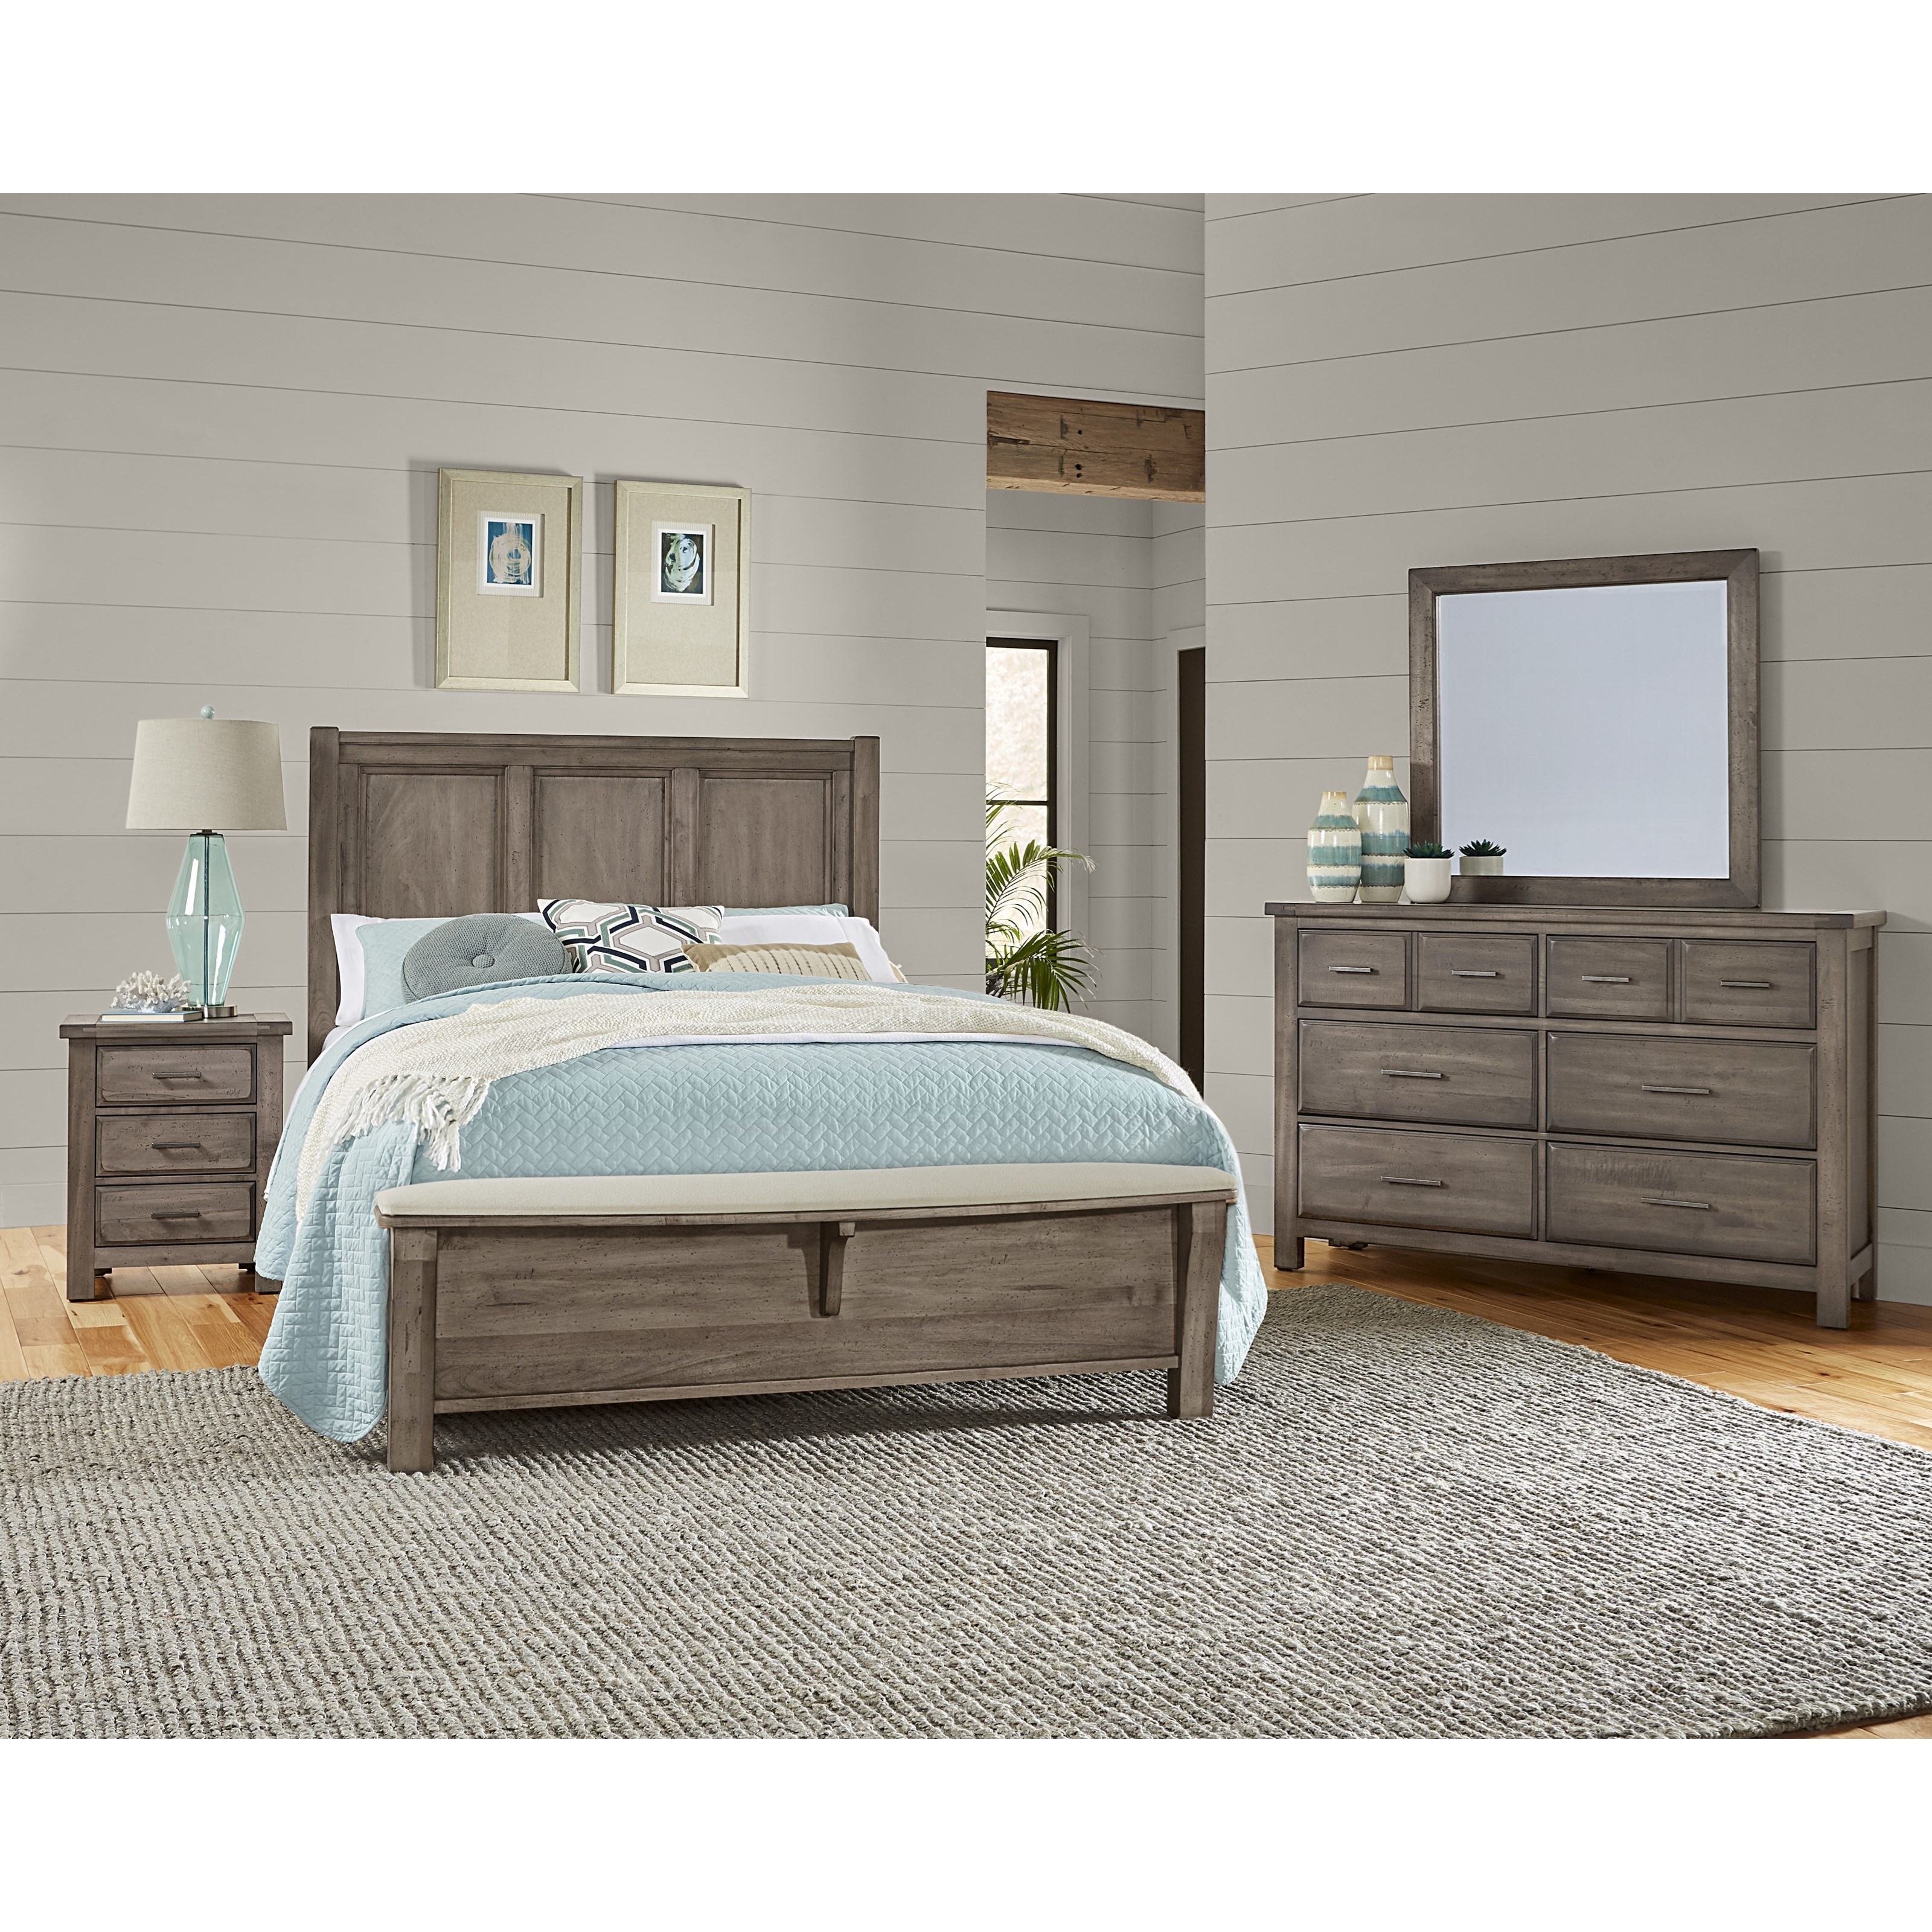 Chestnut Creek Queen Bedroom Group by Centennial Solids at Home Collections Furniture